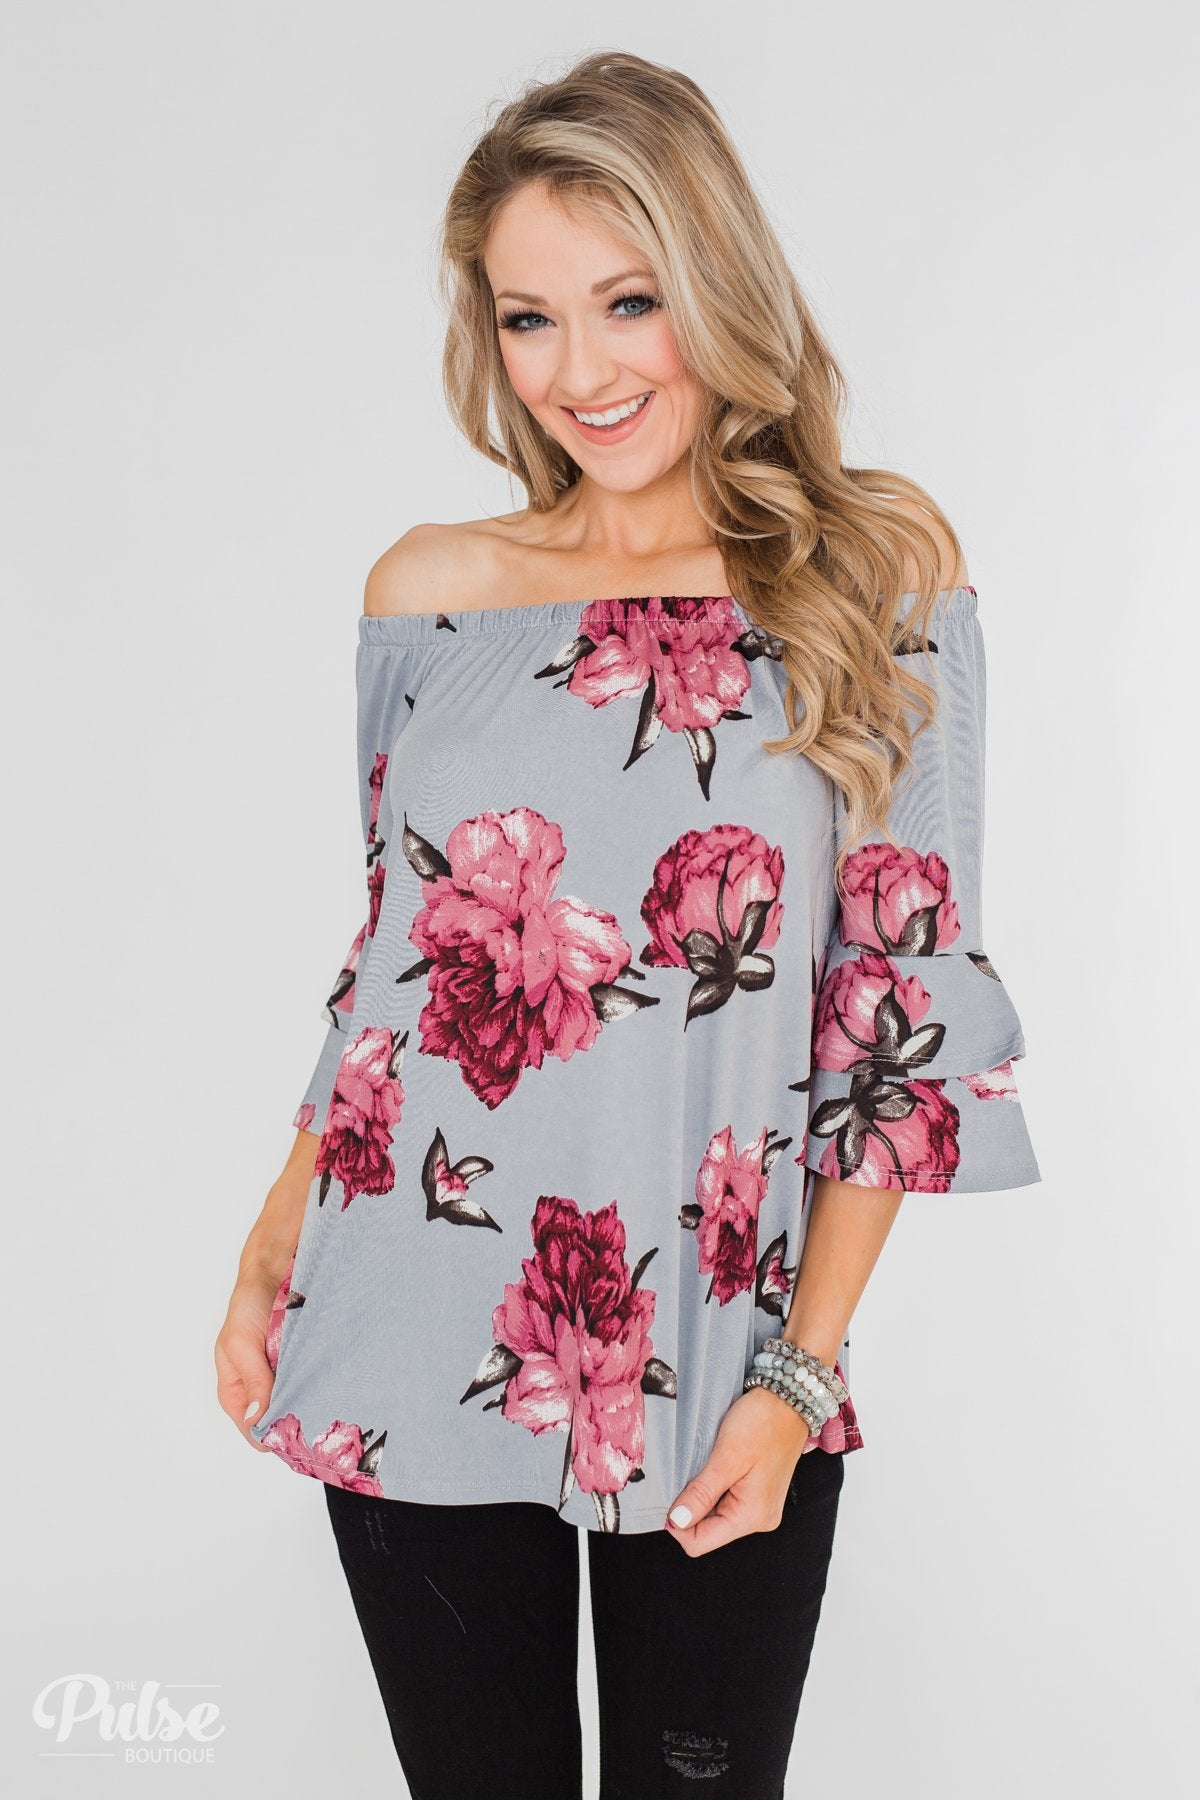 Bring on the Floral Off the Shoulder Top- Powder Blue